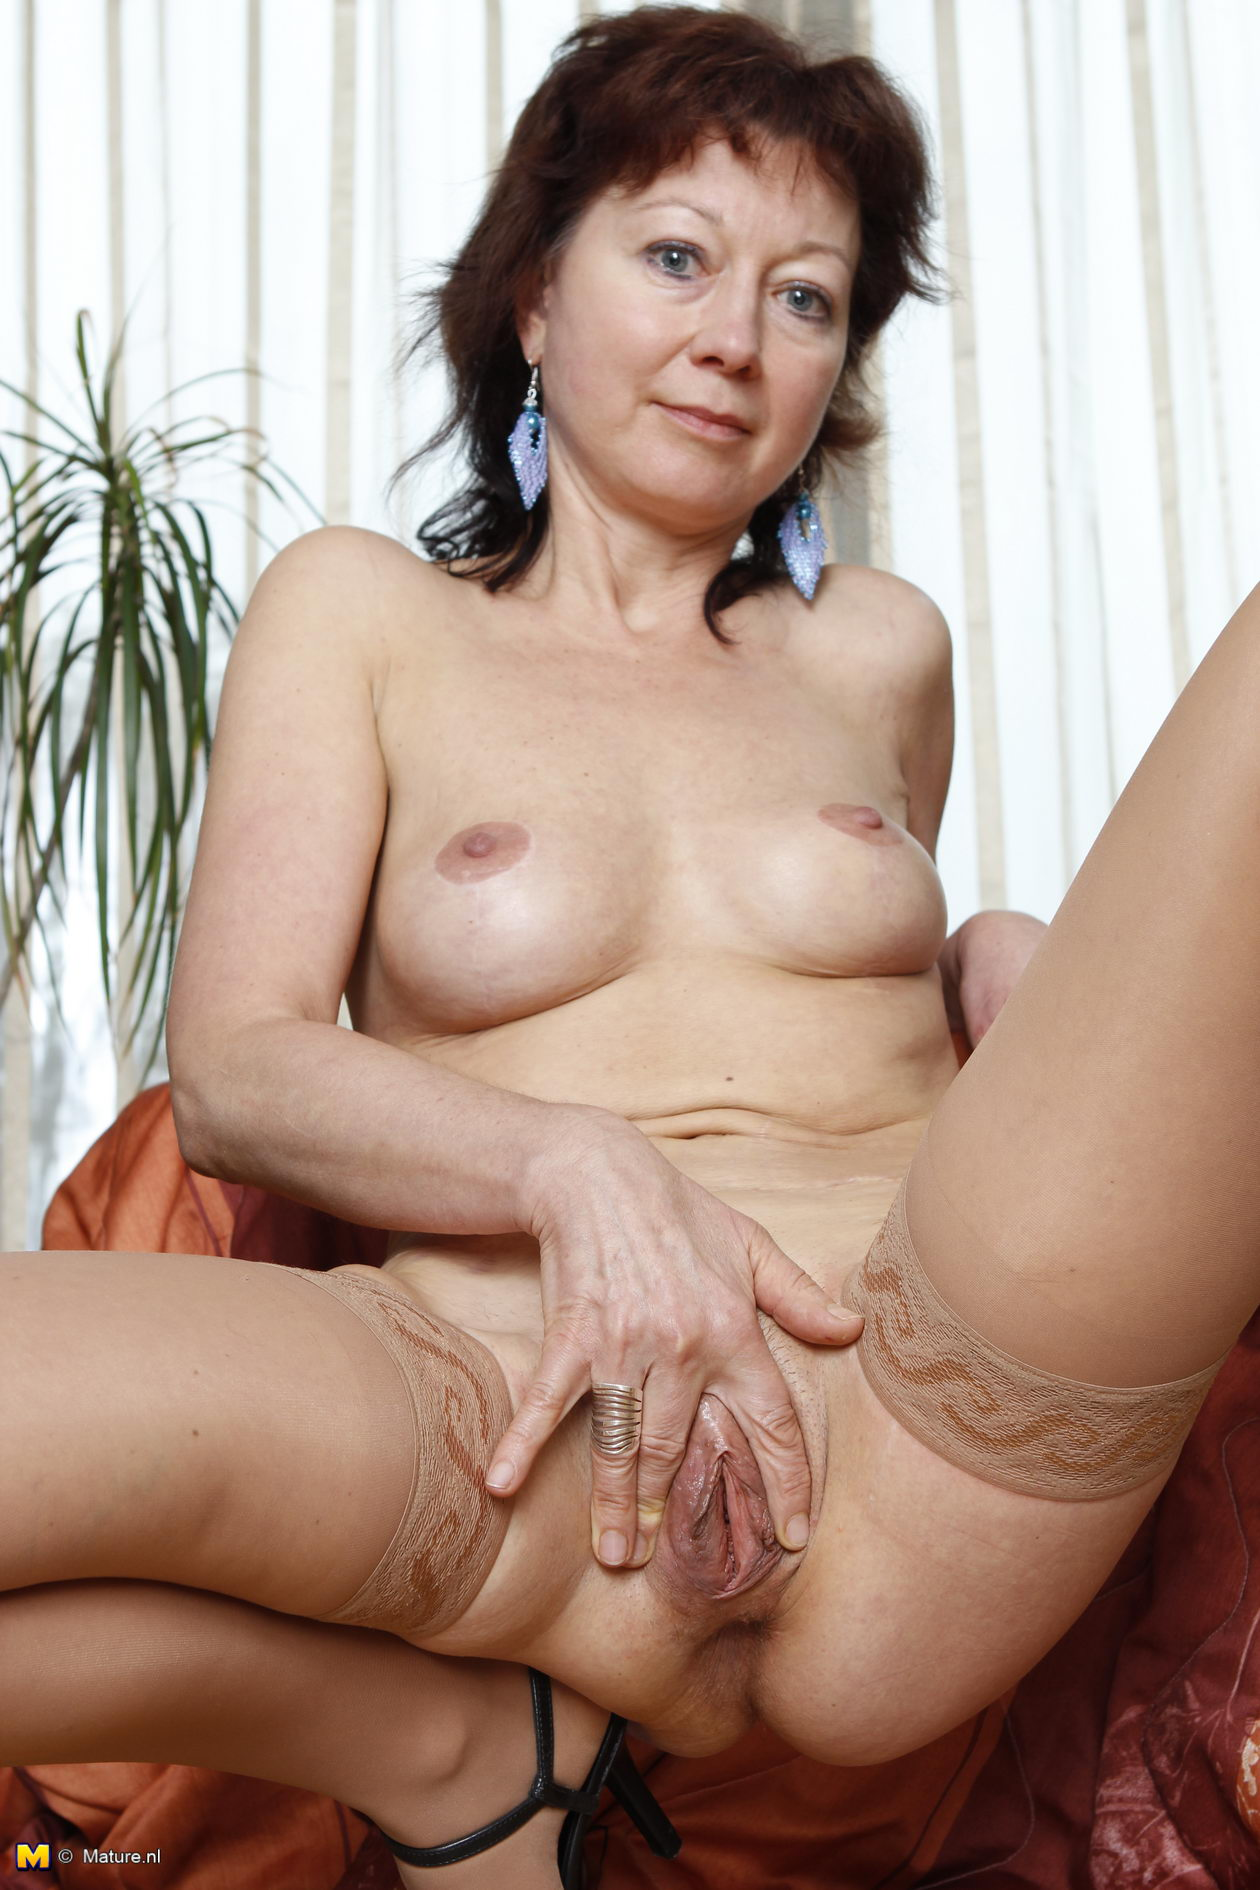 Wet pussy mom Old Women